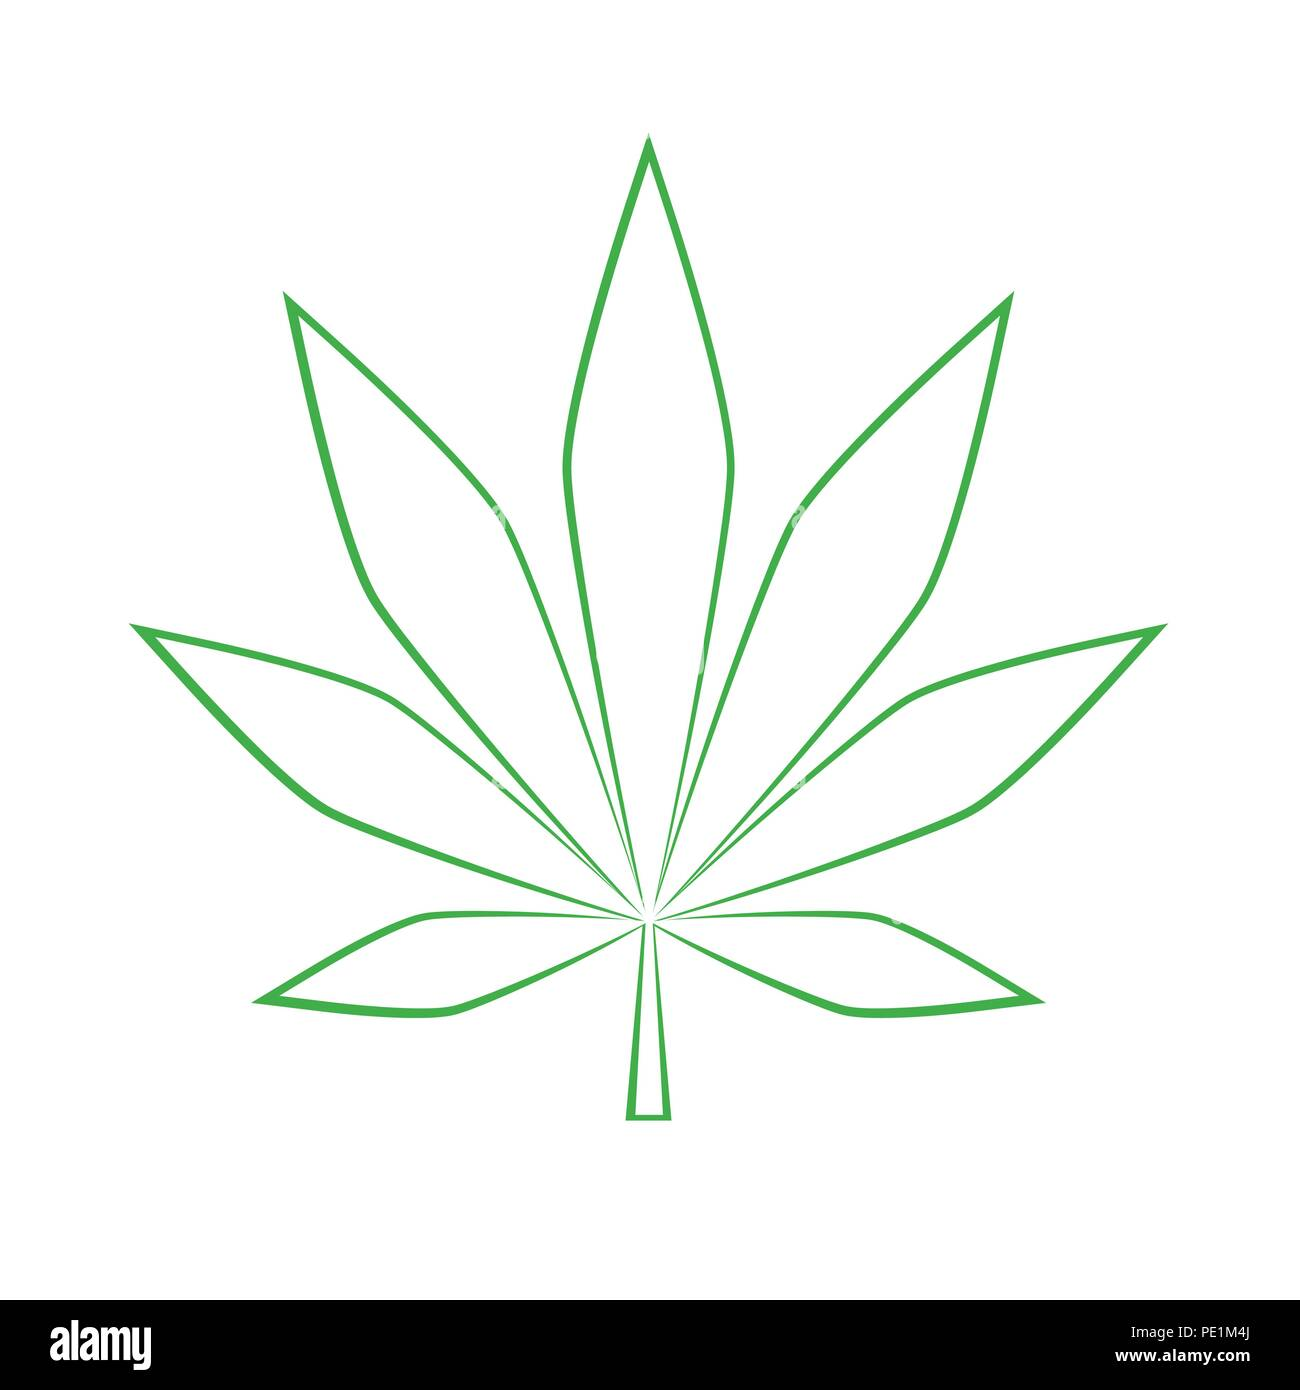 Feuille de cannabis vert simple dessin illustration vecteur eps10 vecteurs et illustration - Feuille cannabis dessin ...